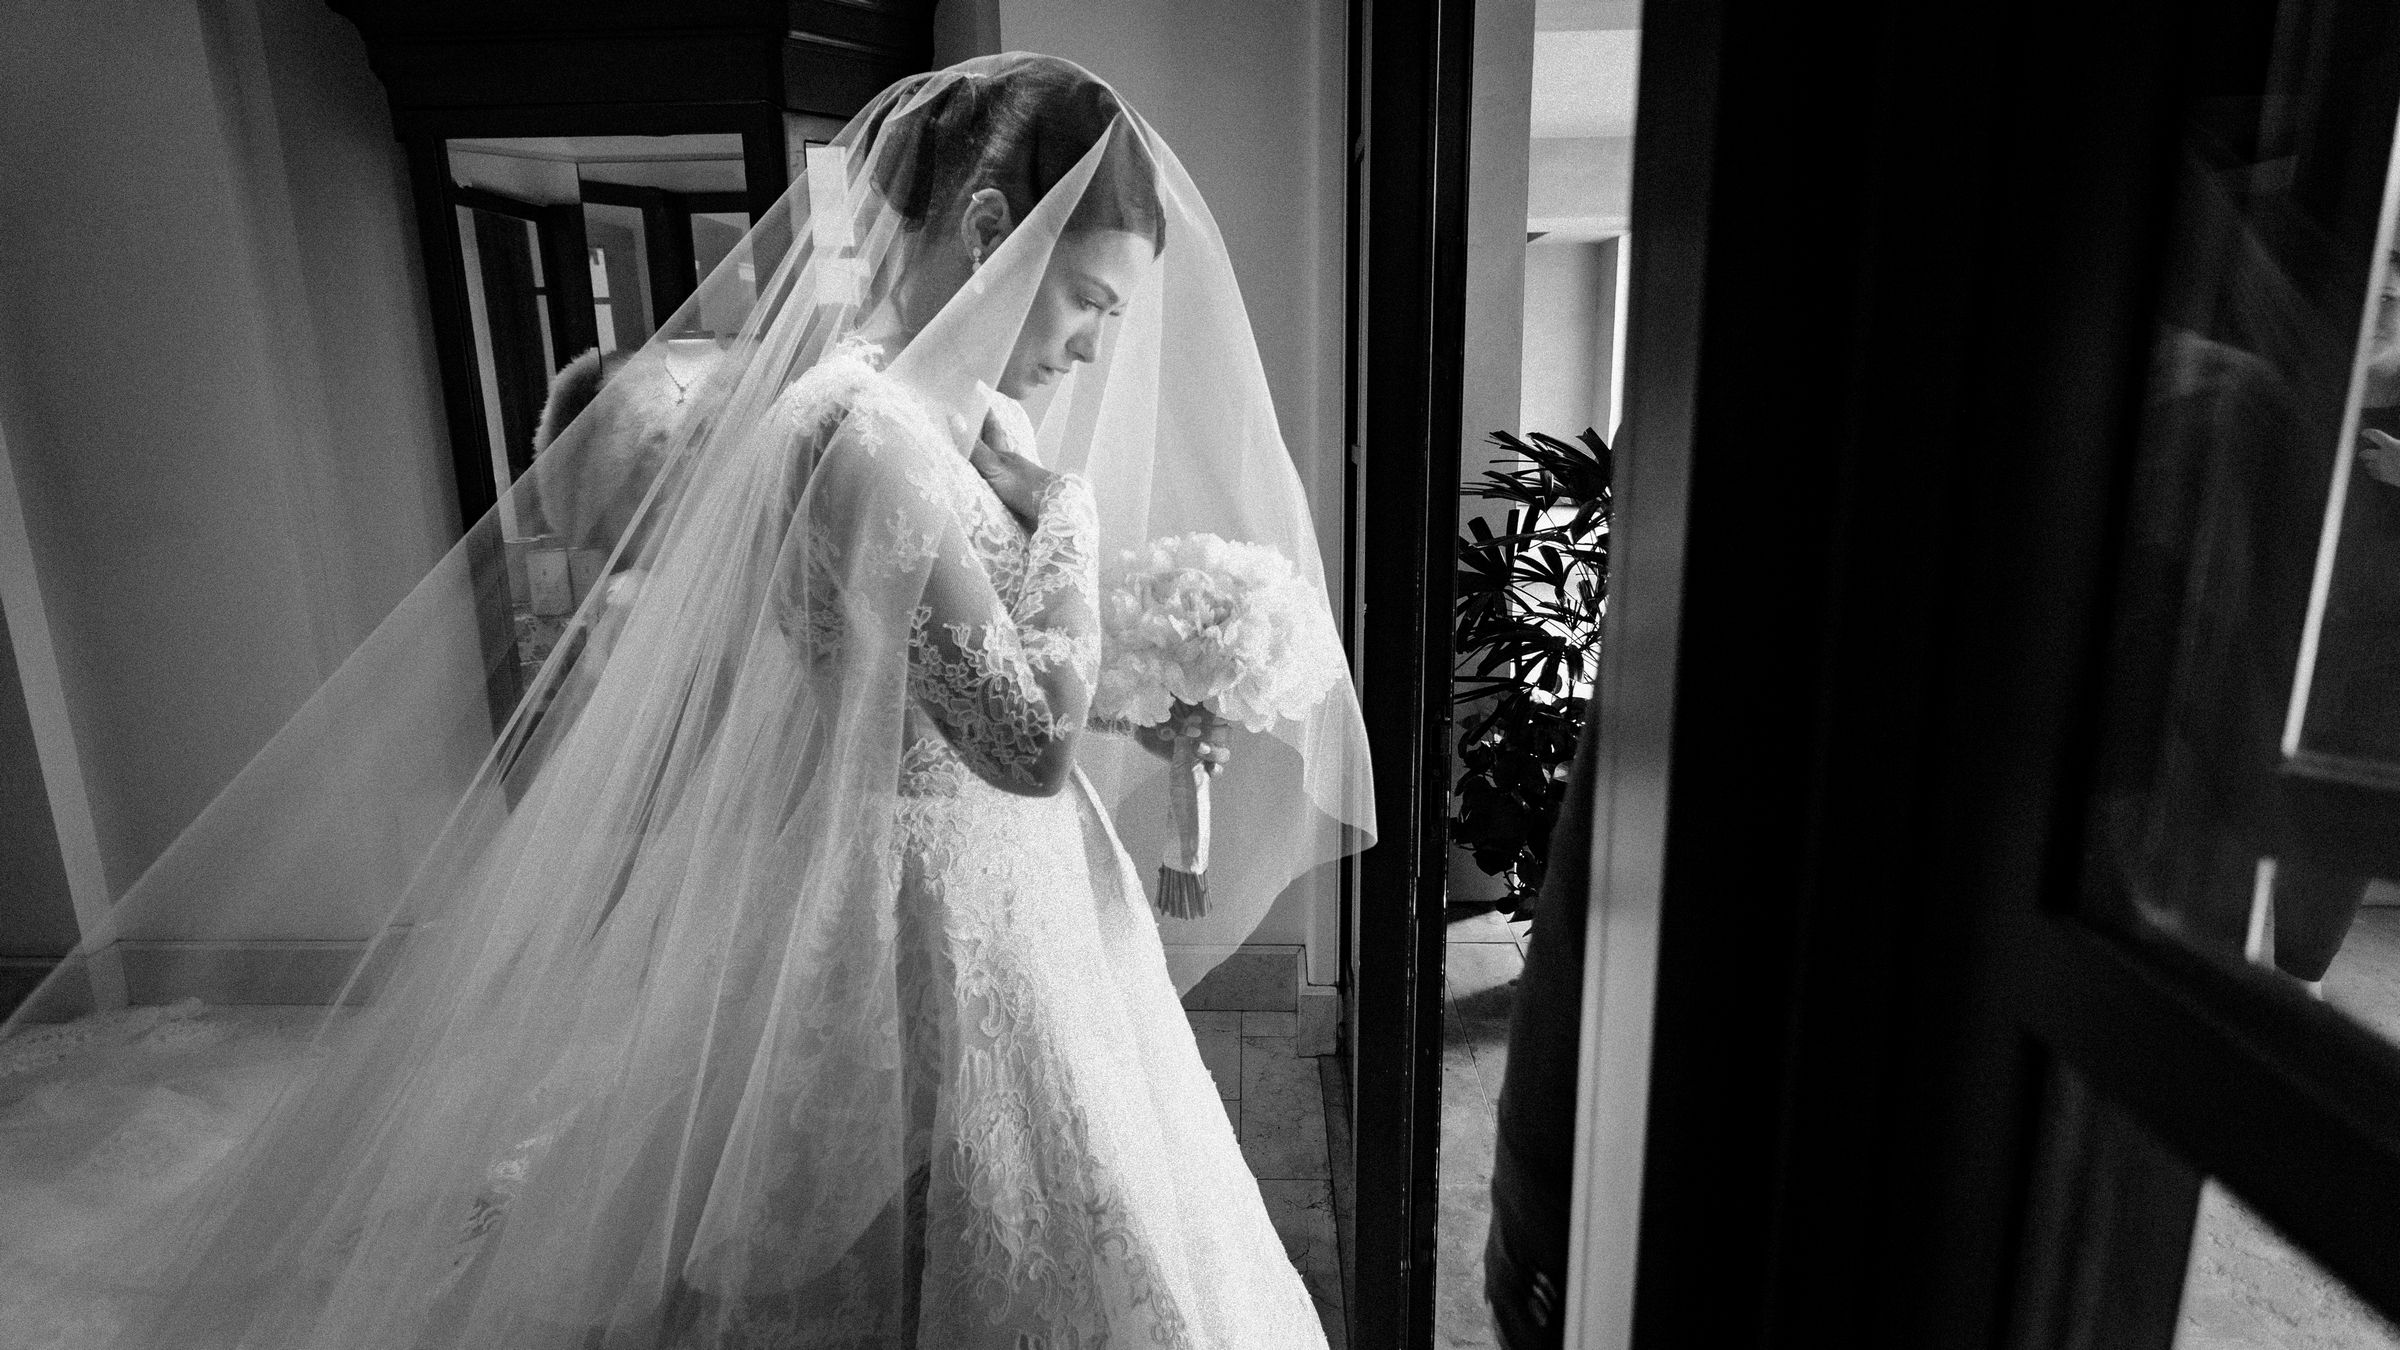 maria-emotional-moments-before-walking-down-the-aisle-wedding-mzef1496.jpg